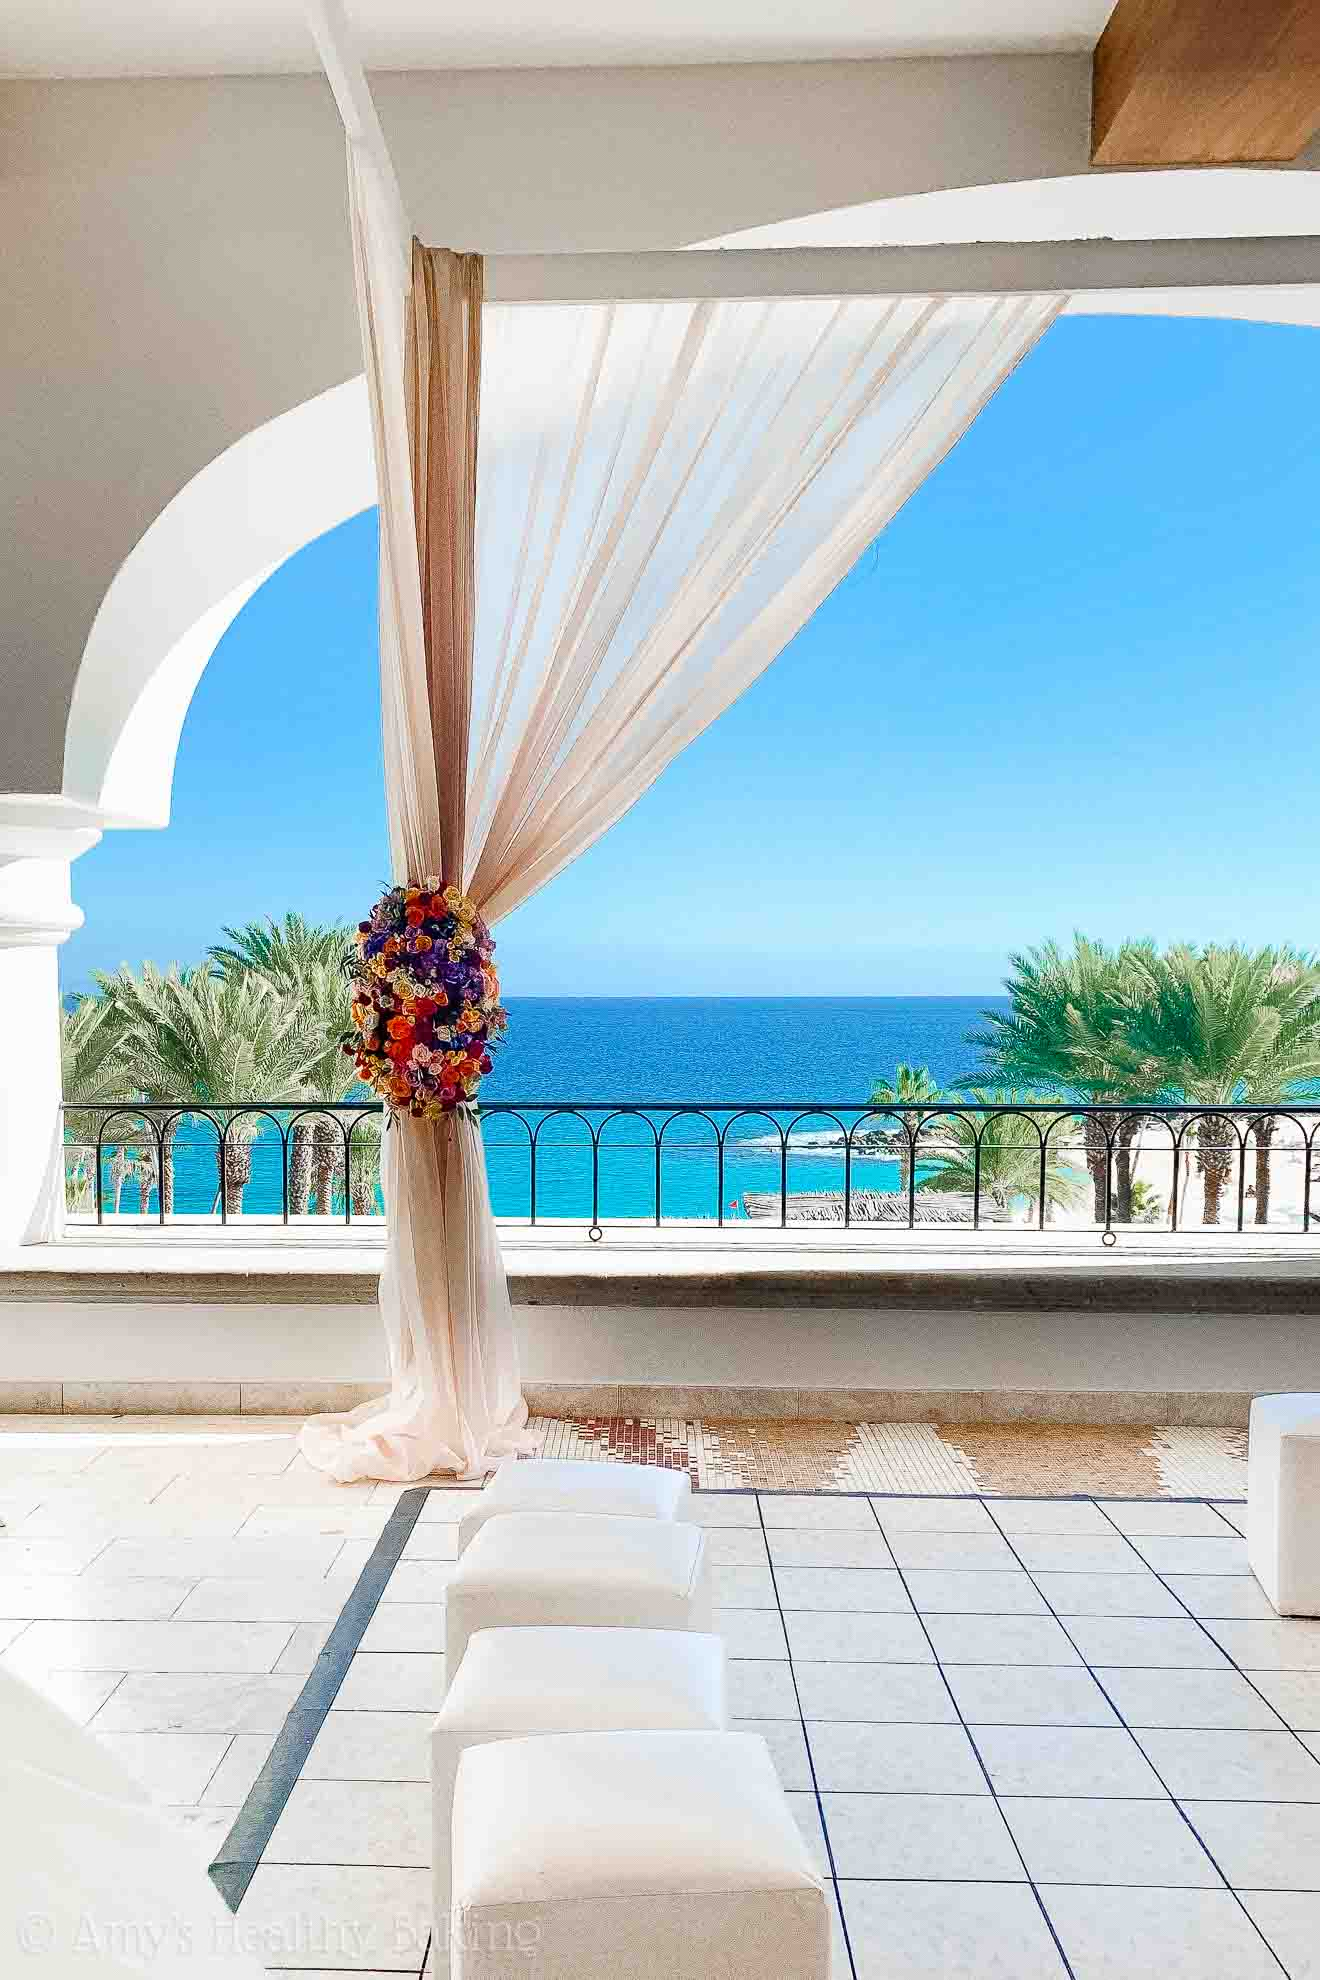 Wedding altar overlooking the ocean at the Hilton Los Cabos in Mexico